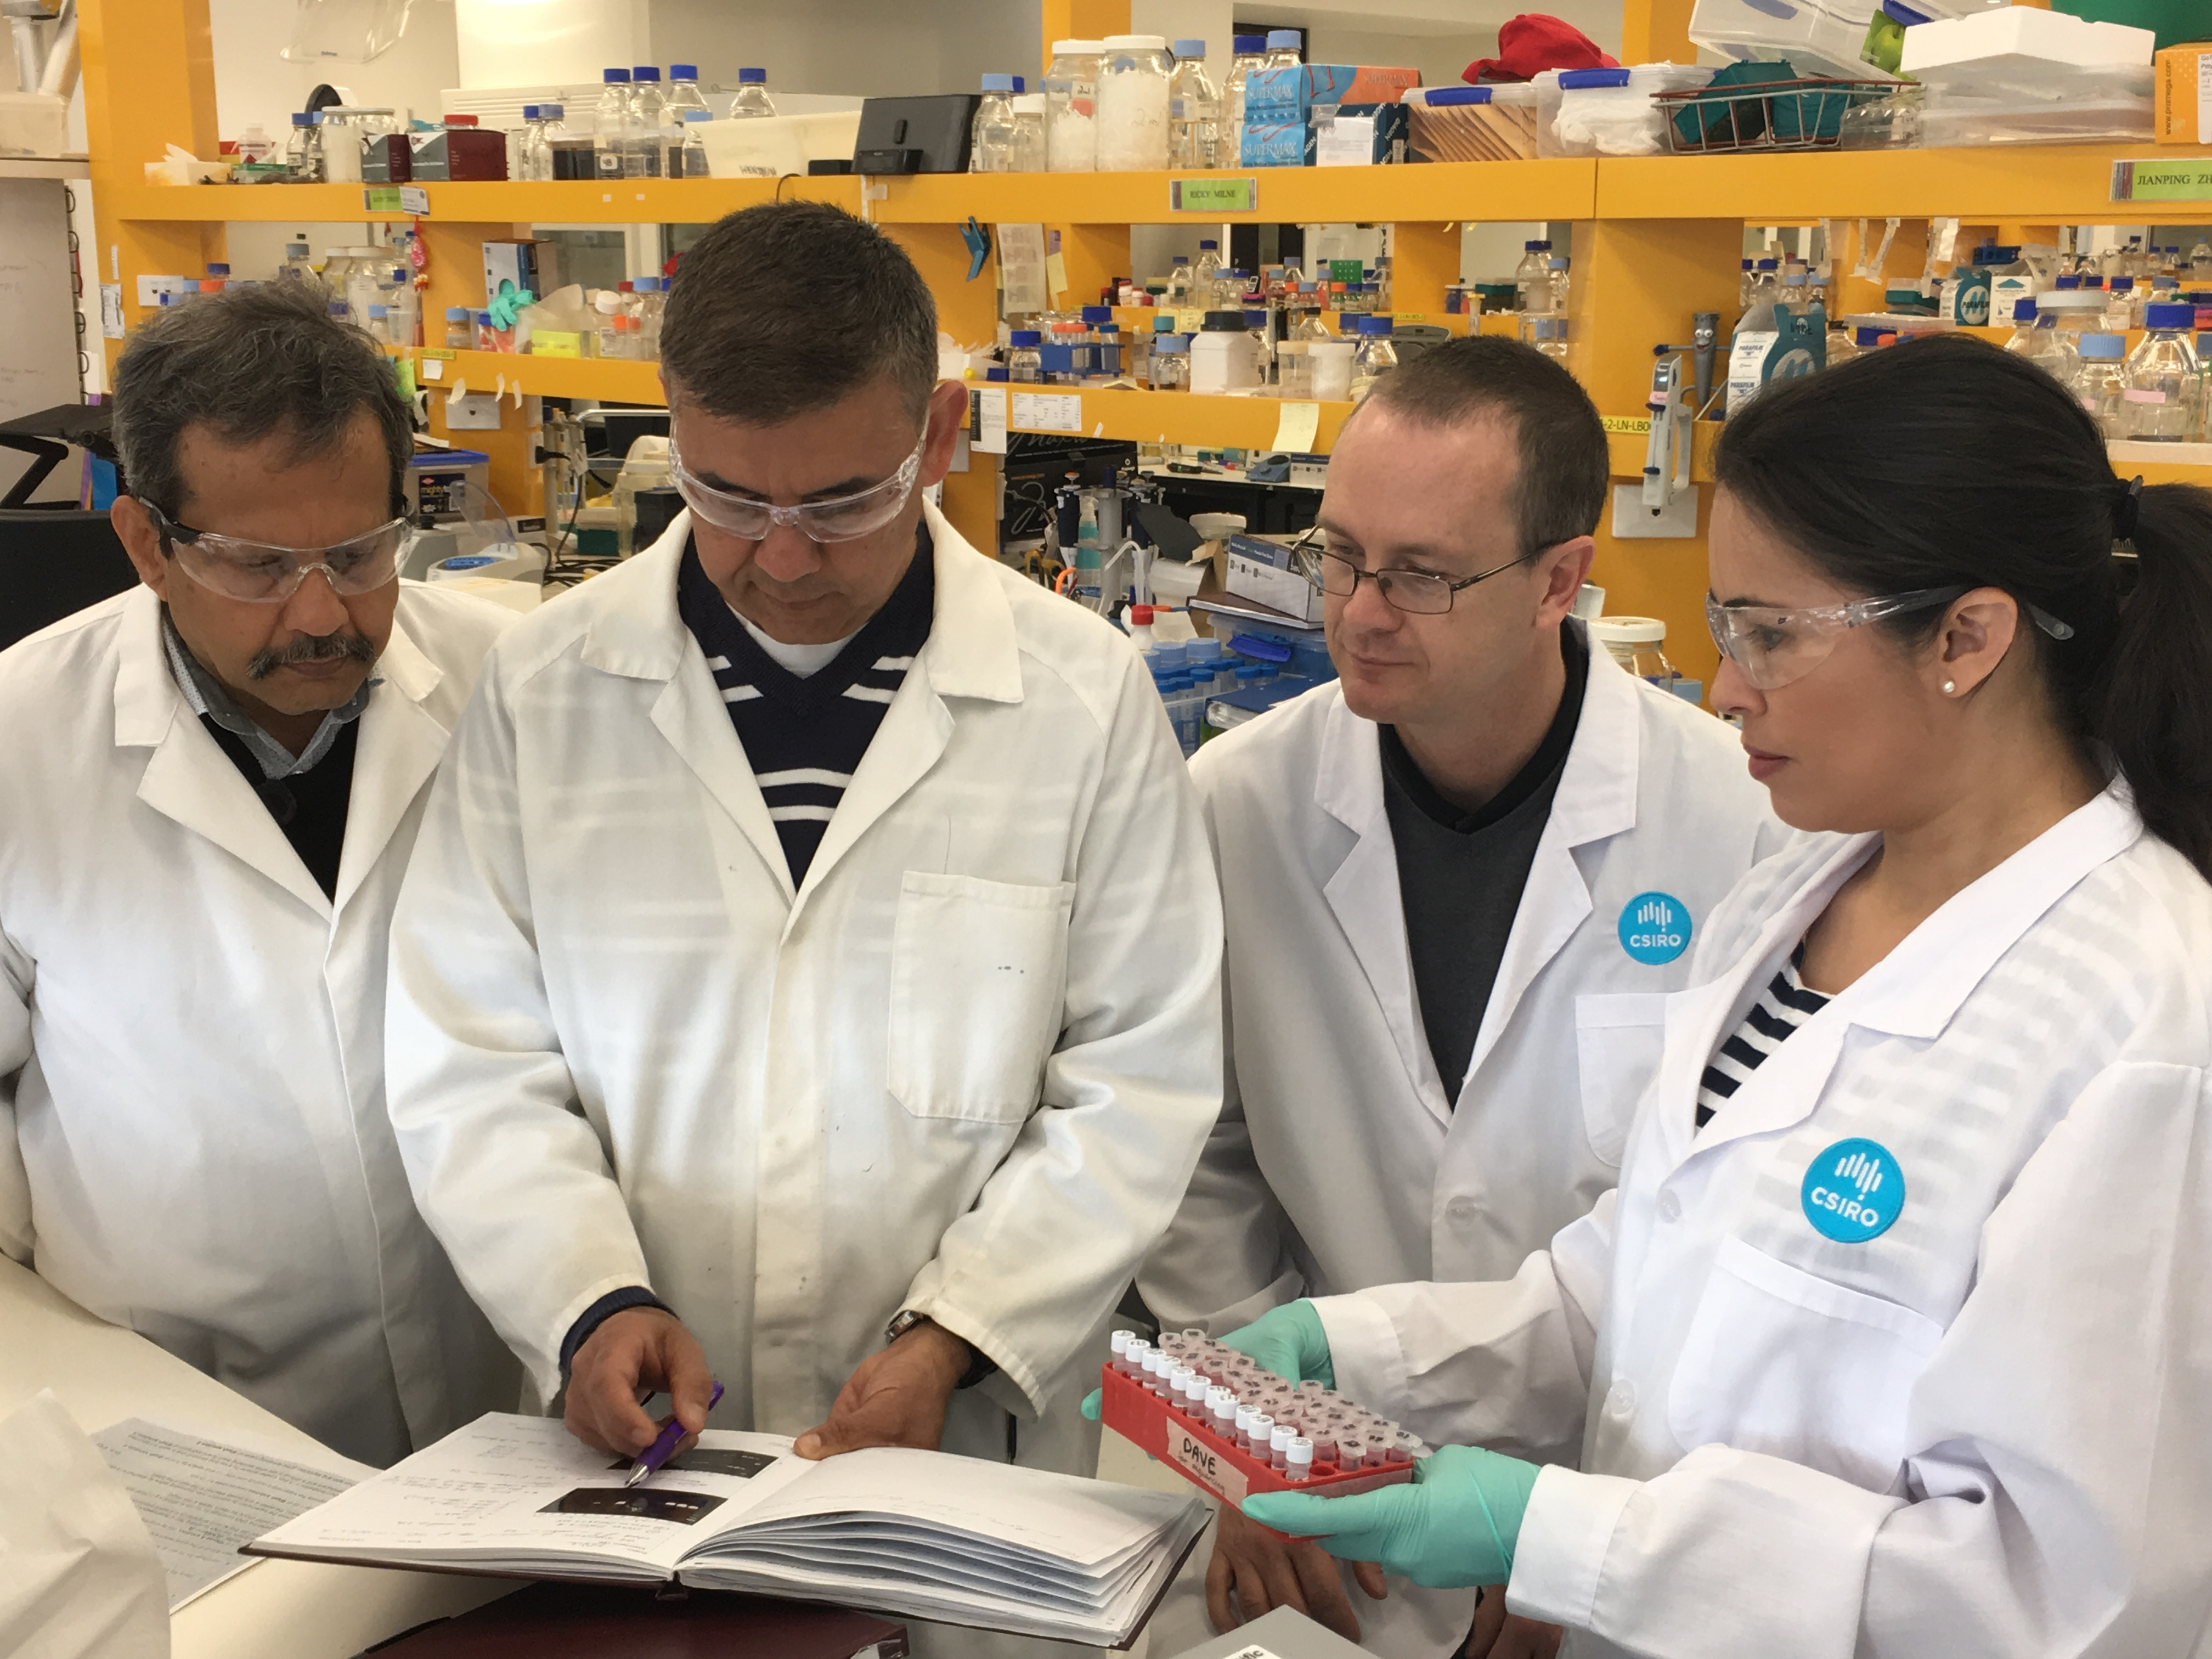 Four scientists study a sample against notes in a book